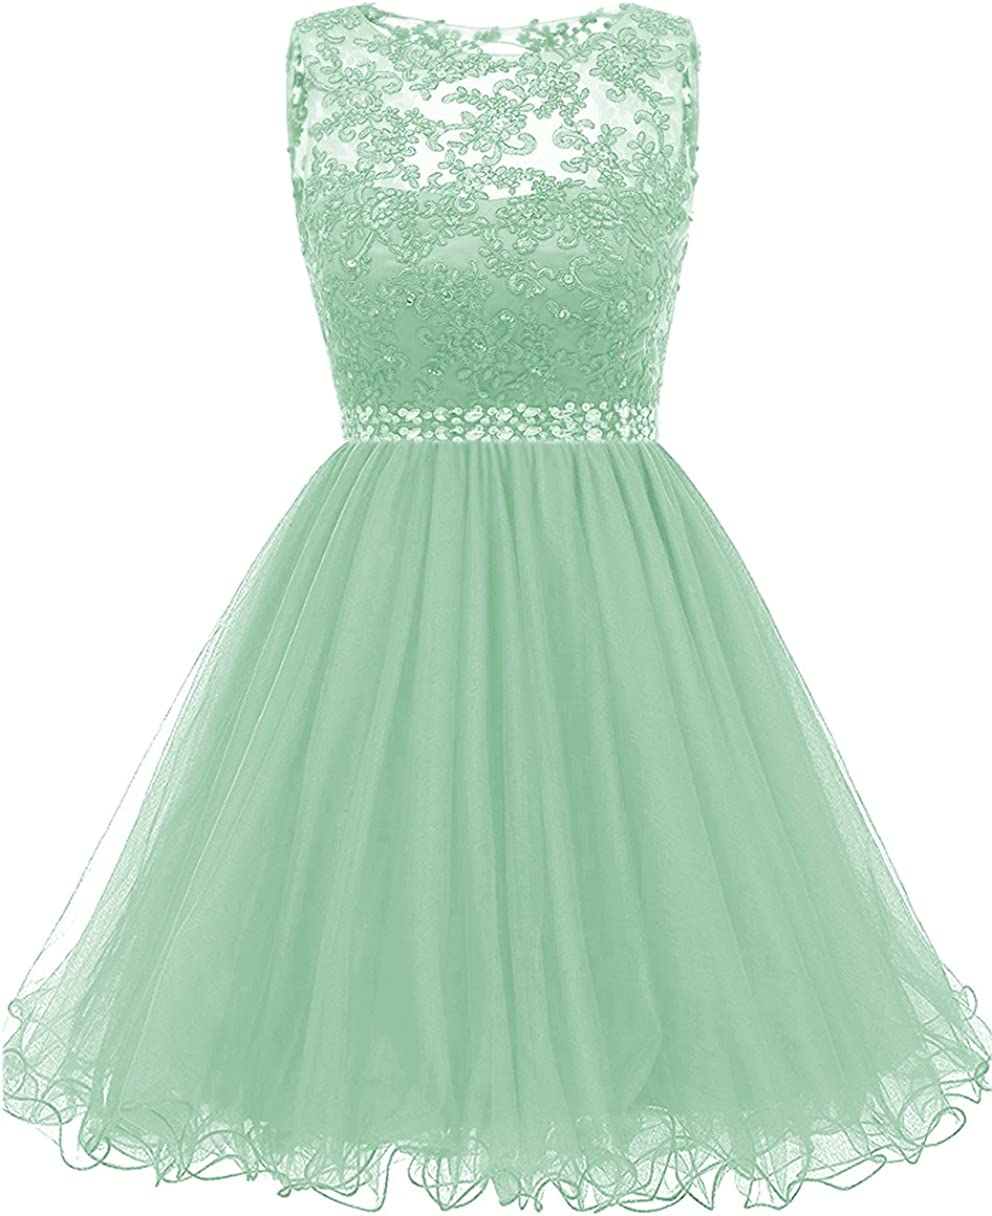 Himoda Lace Homecoming Dresses Sequined s Cocktail Prom Gowns Short H010